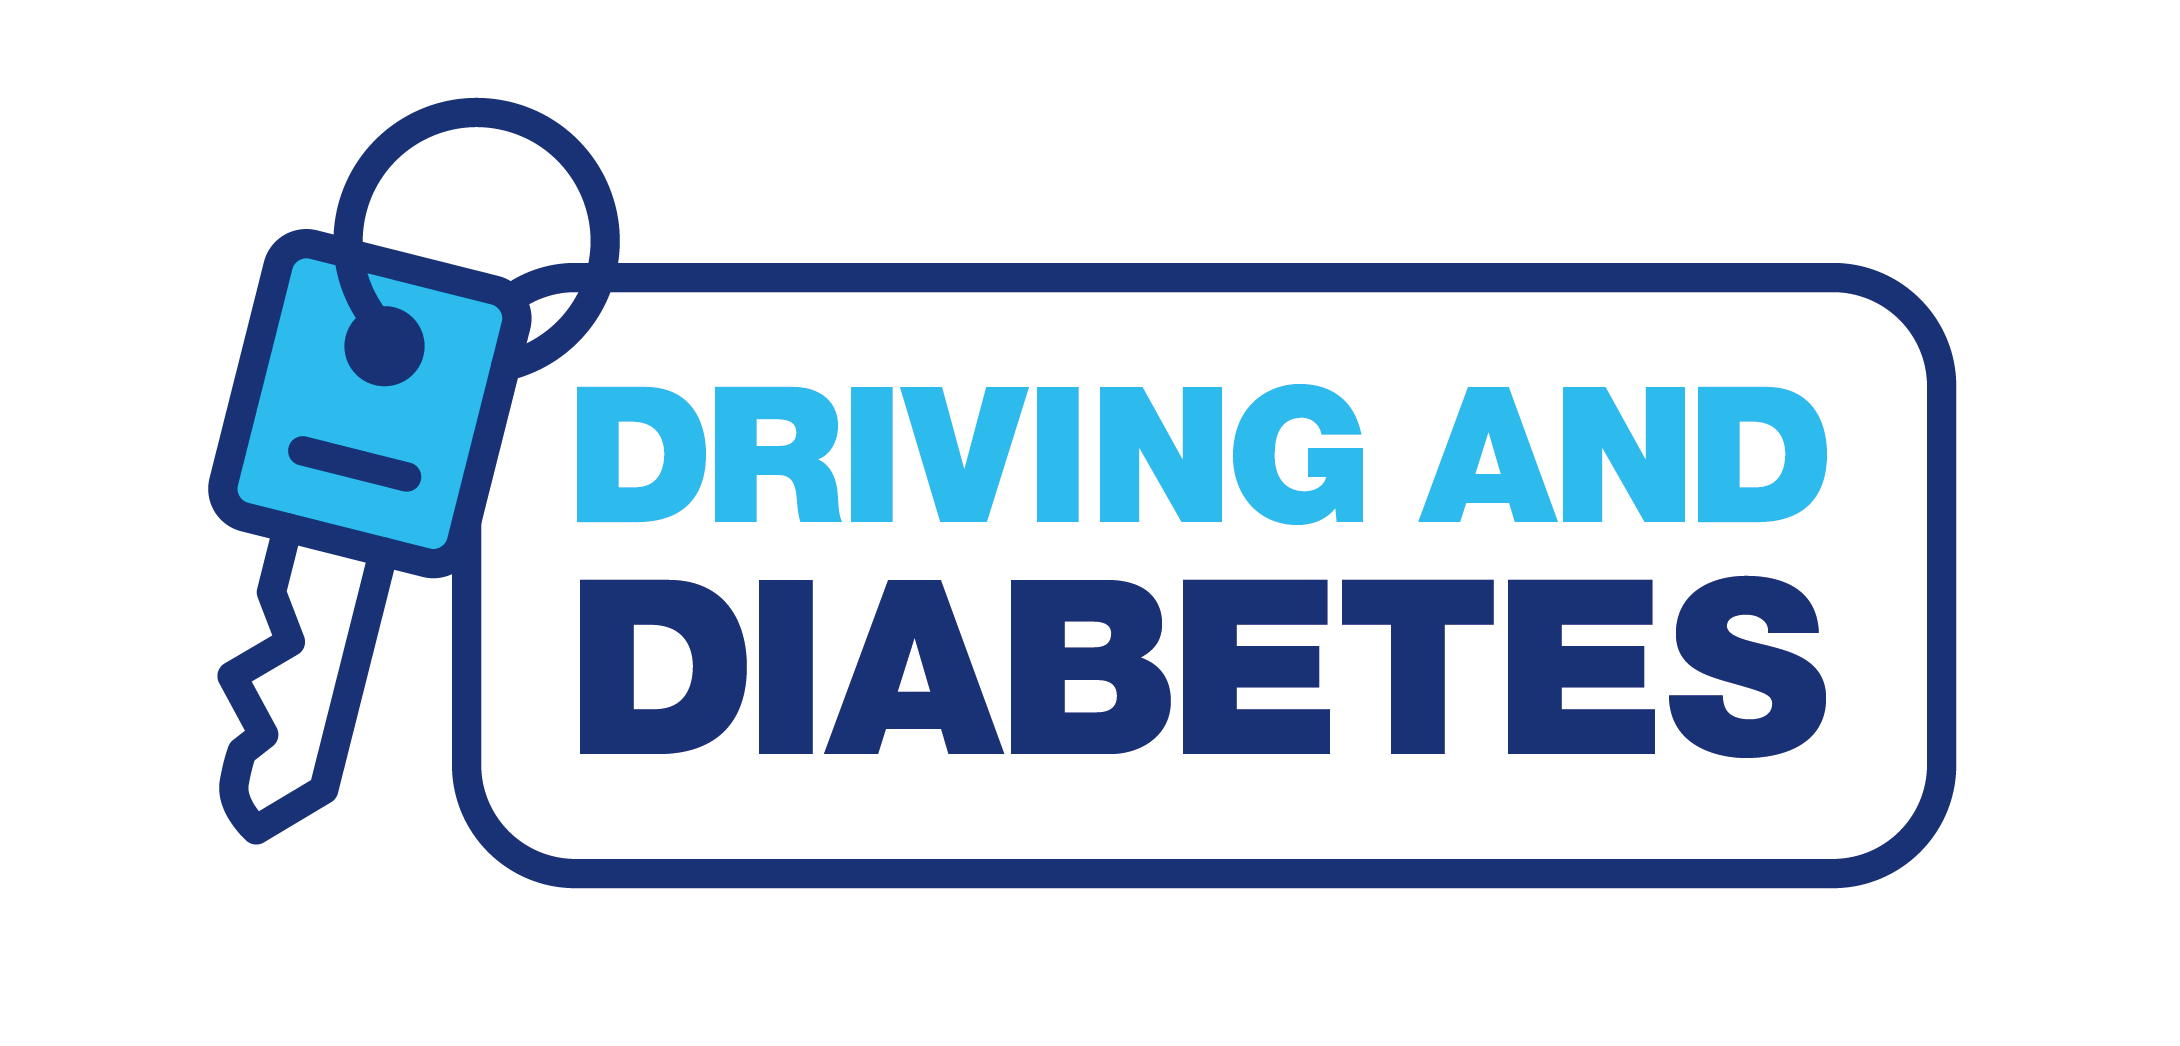 Driving and diabetes